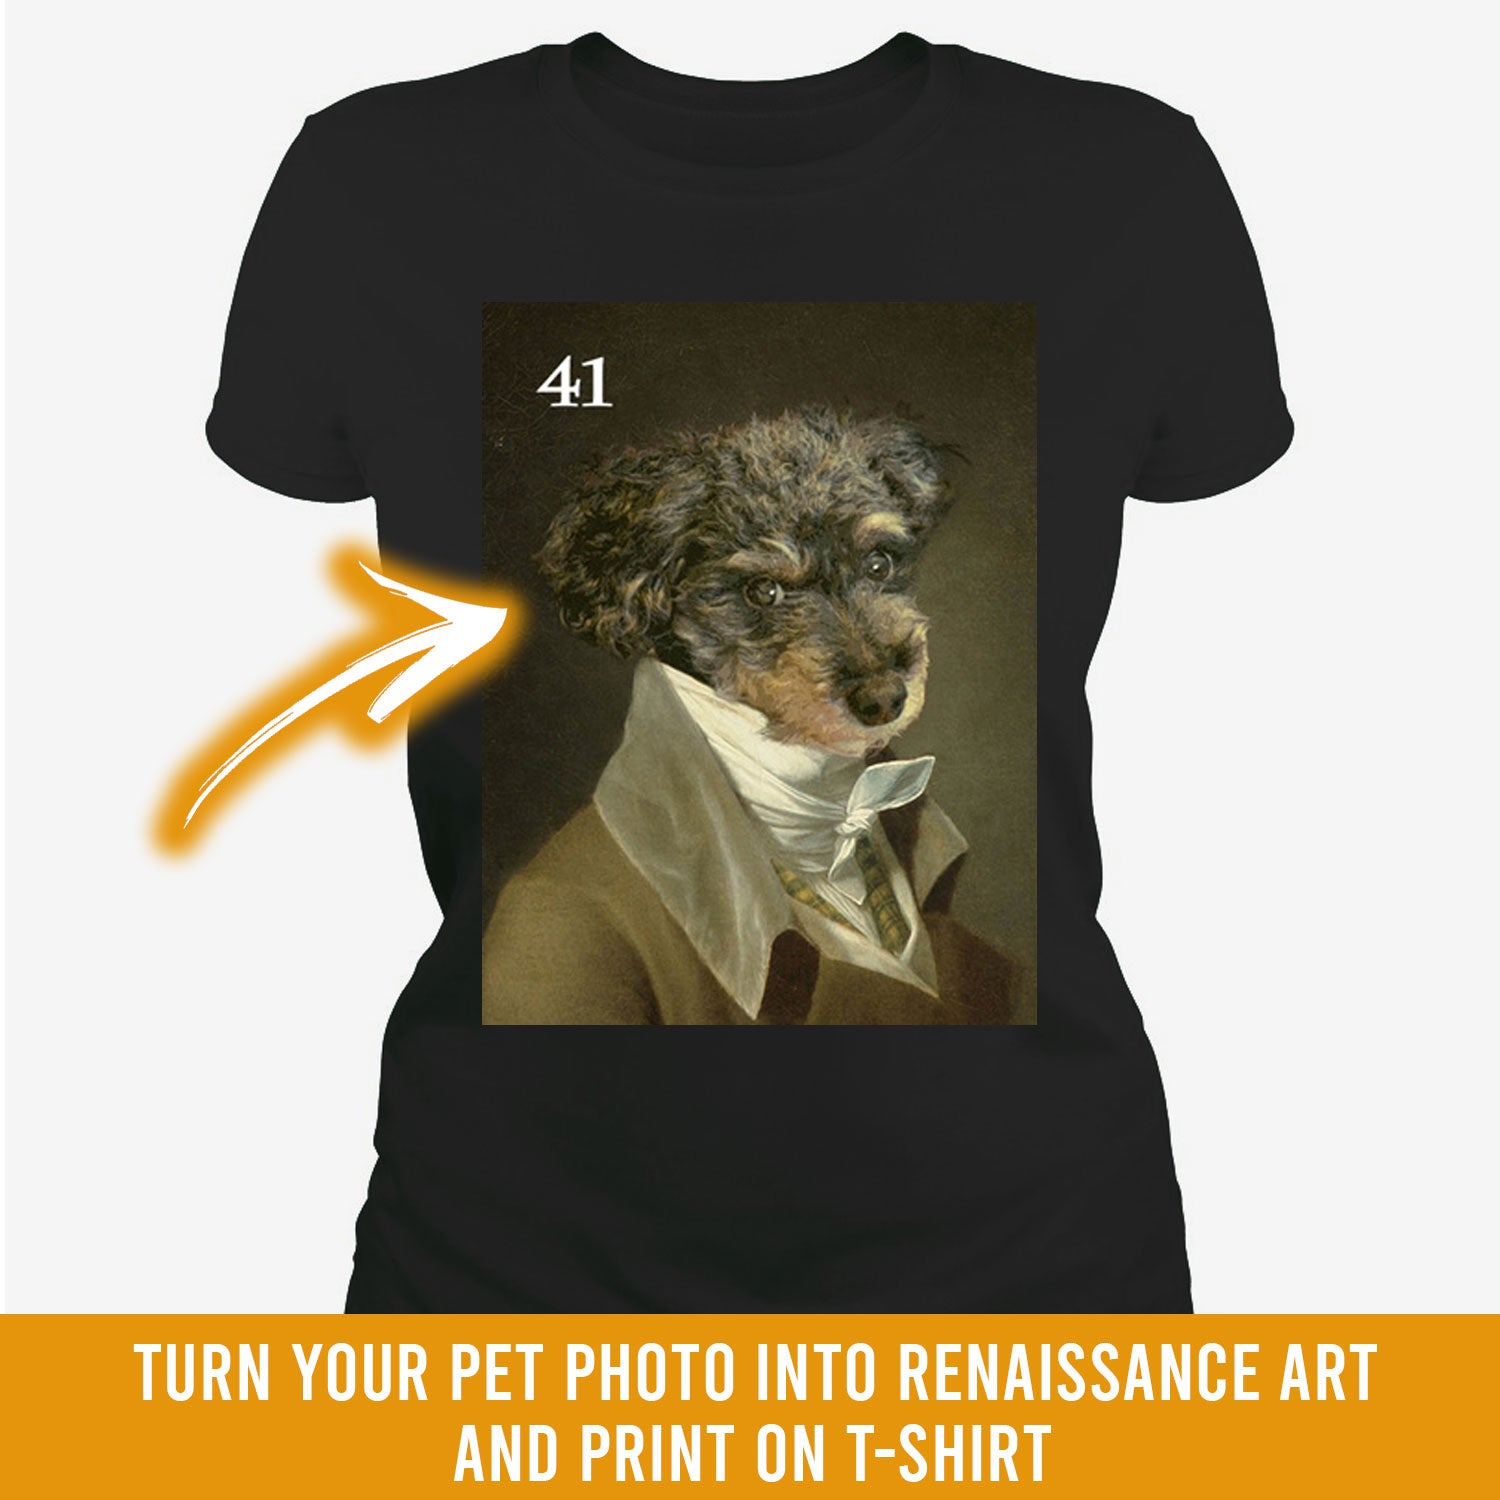 Renaissance historical M-41 male pet portrait